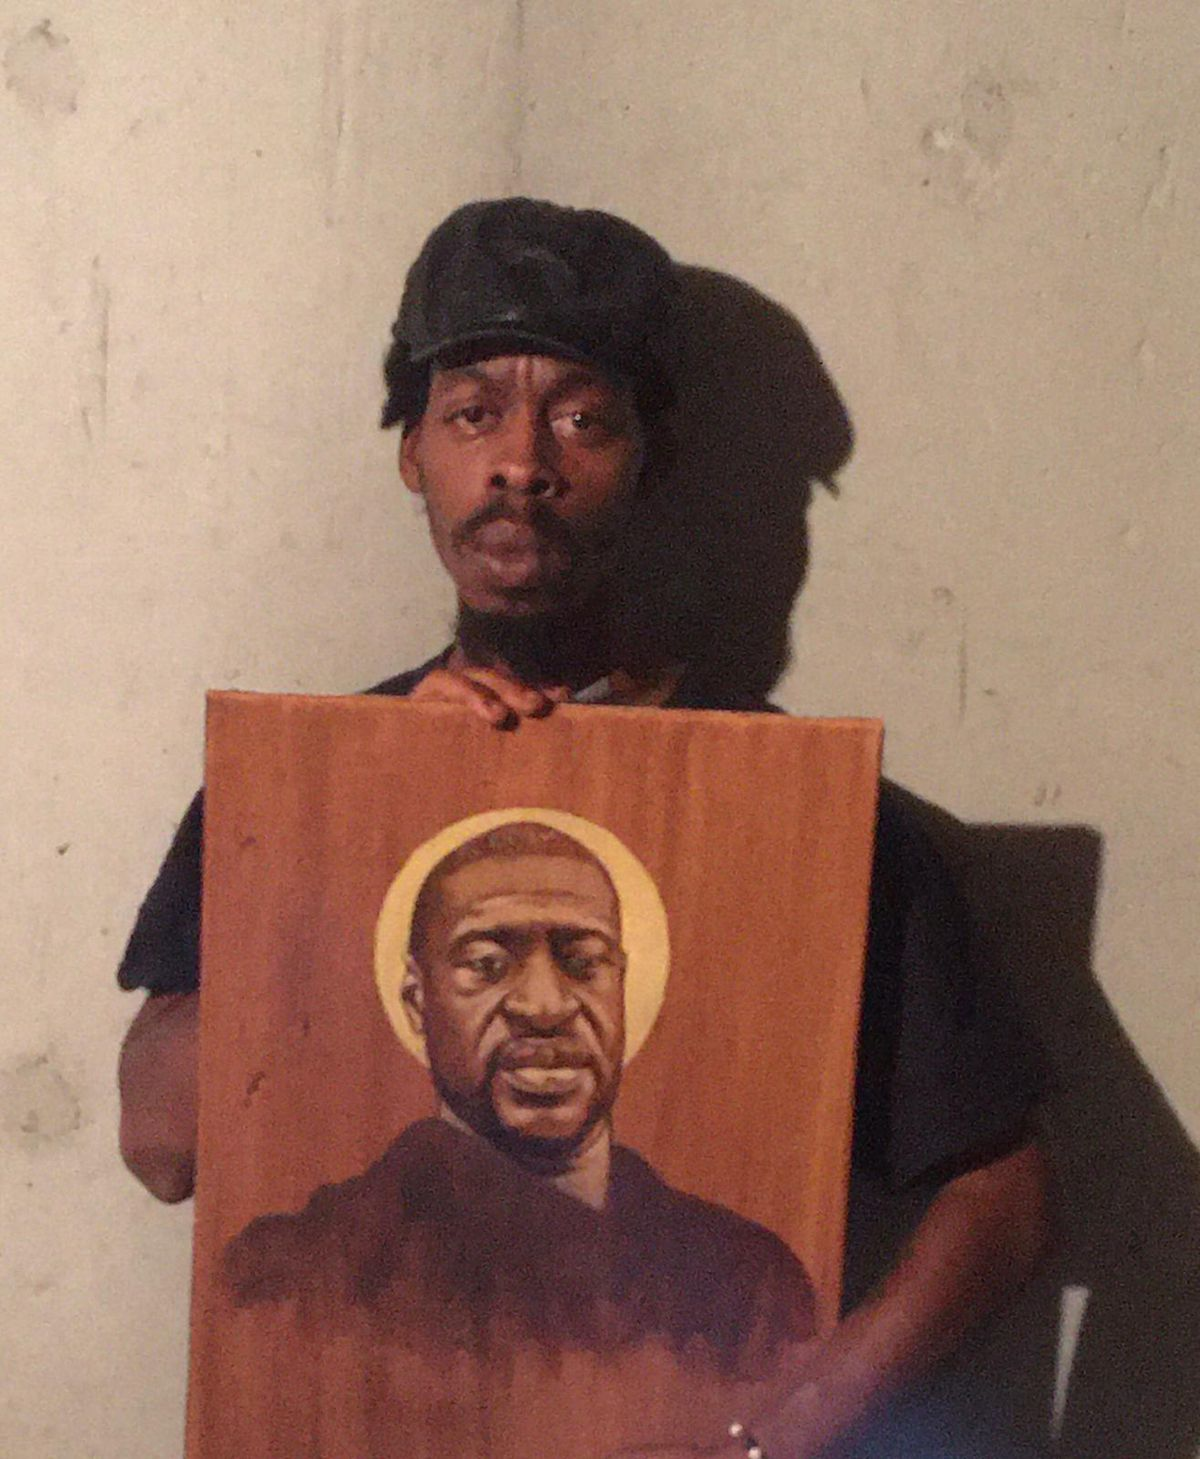 A Black man holds a painted portrait of George Floyd with a halo of light behind his head.